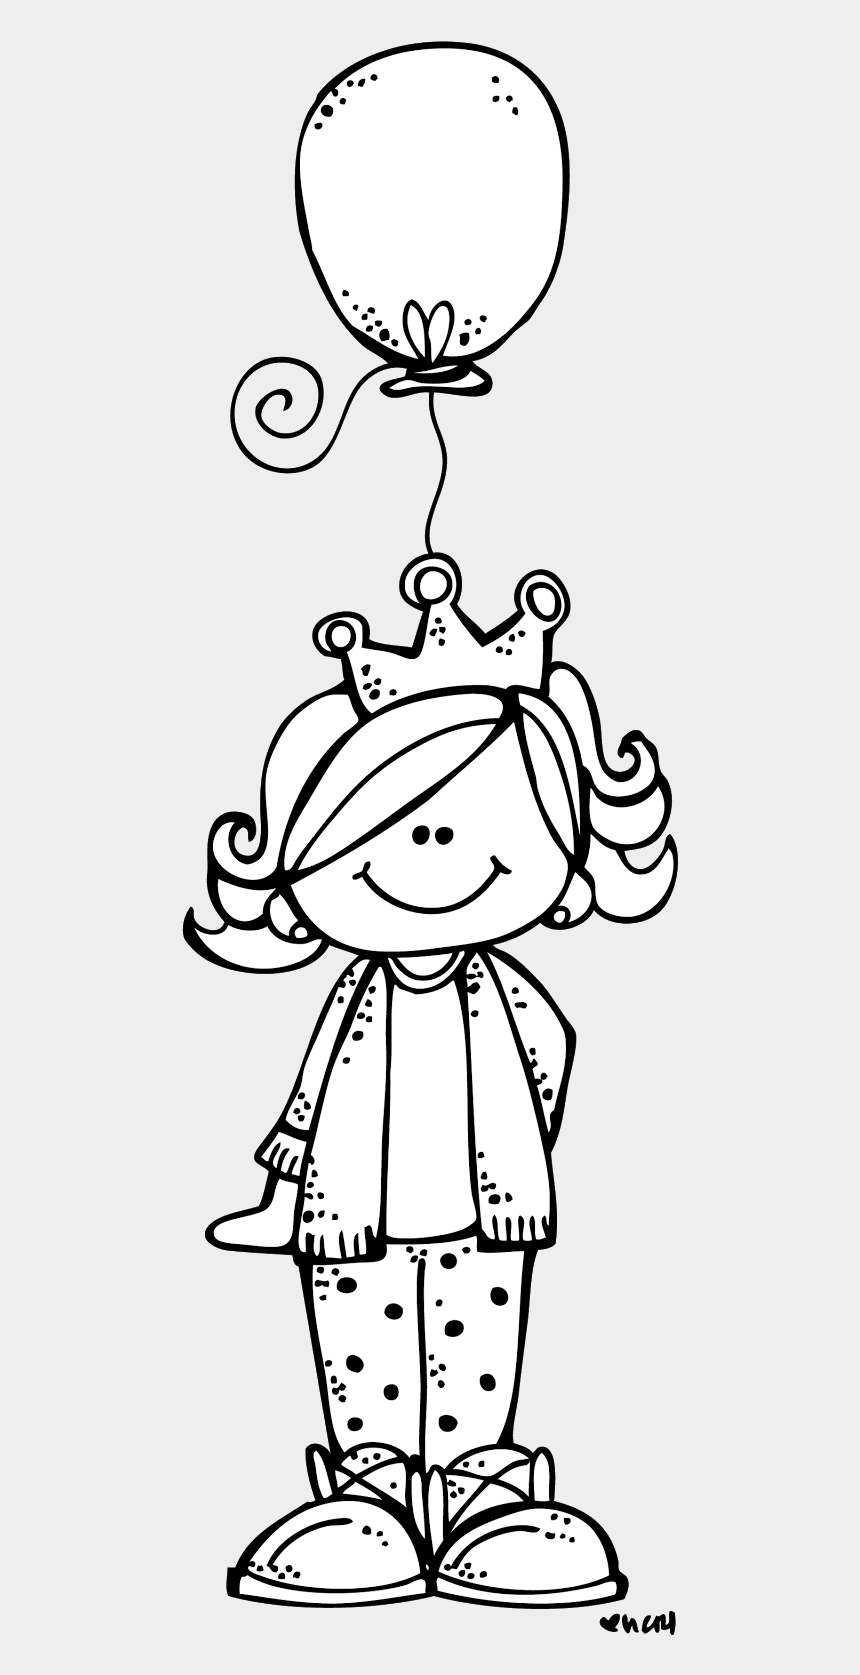 party clipart black and white, Cartoons - Melonheadz Illustrating Birthday Week Day Coloring - Birthday Girl Clipart Black And White